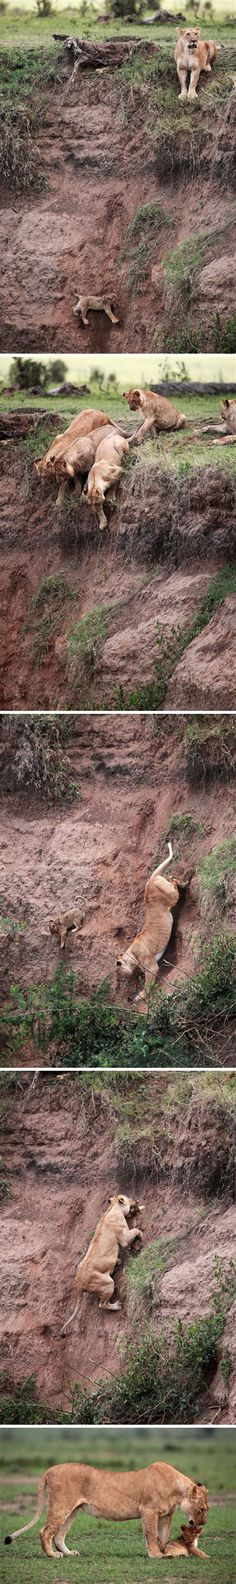 Lioness Rescues Cub (photo credit: Jean-Francois Lagrot)... why they should have sent Sarabi after Simba and not Mufasa.